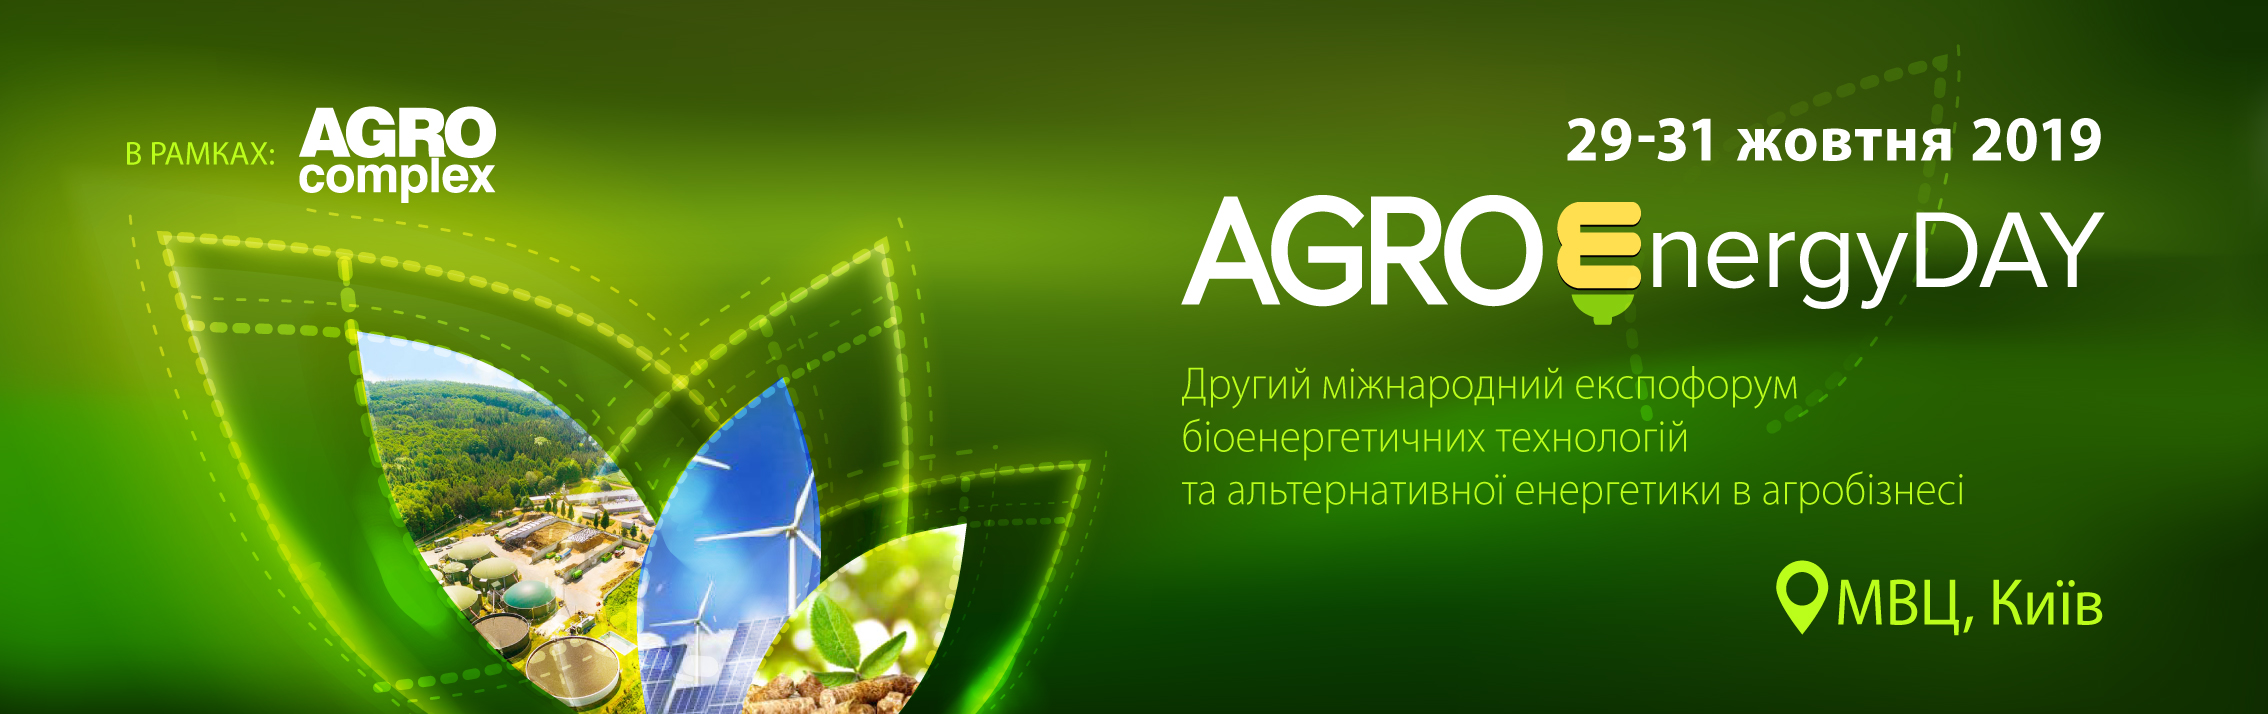 International Expoforum of Bioenergy Technologies and Alternative Energy in agro-business AgroEnergyDAY 2019